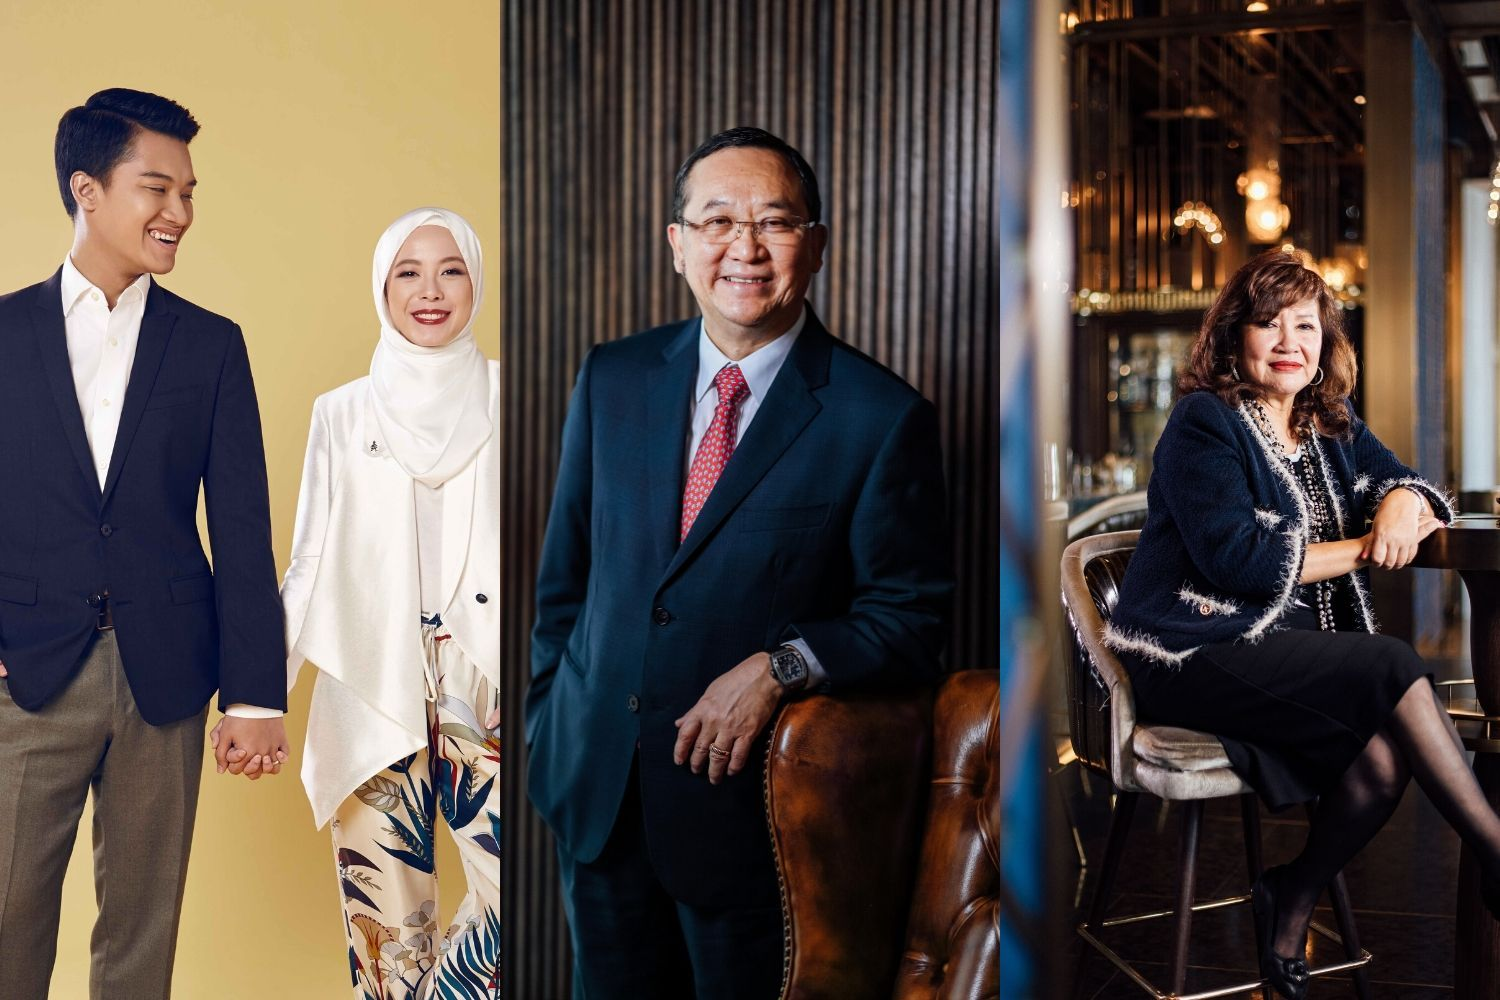 Watch: Up Close & Personal With Our #MYTatlerBall2019 Award Recipients